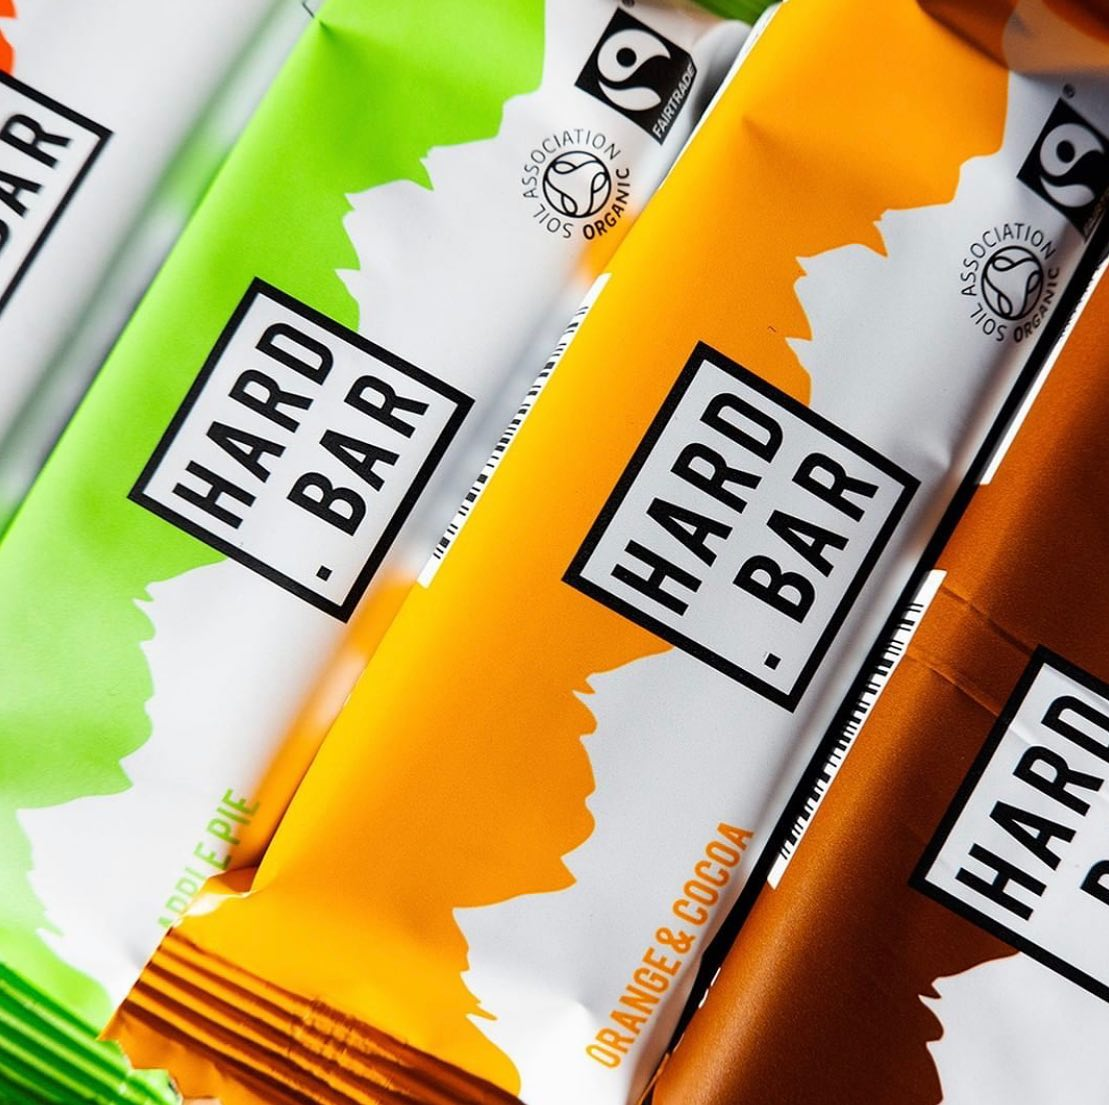 Vegan, Ethical, Plastic-Negative @hard.bar are a great snack for your adventure, and what's more,...